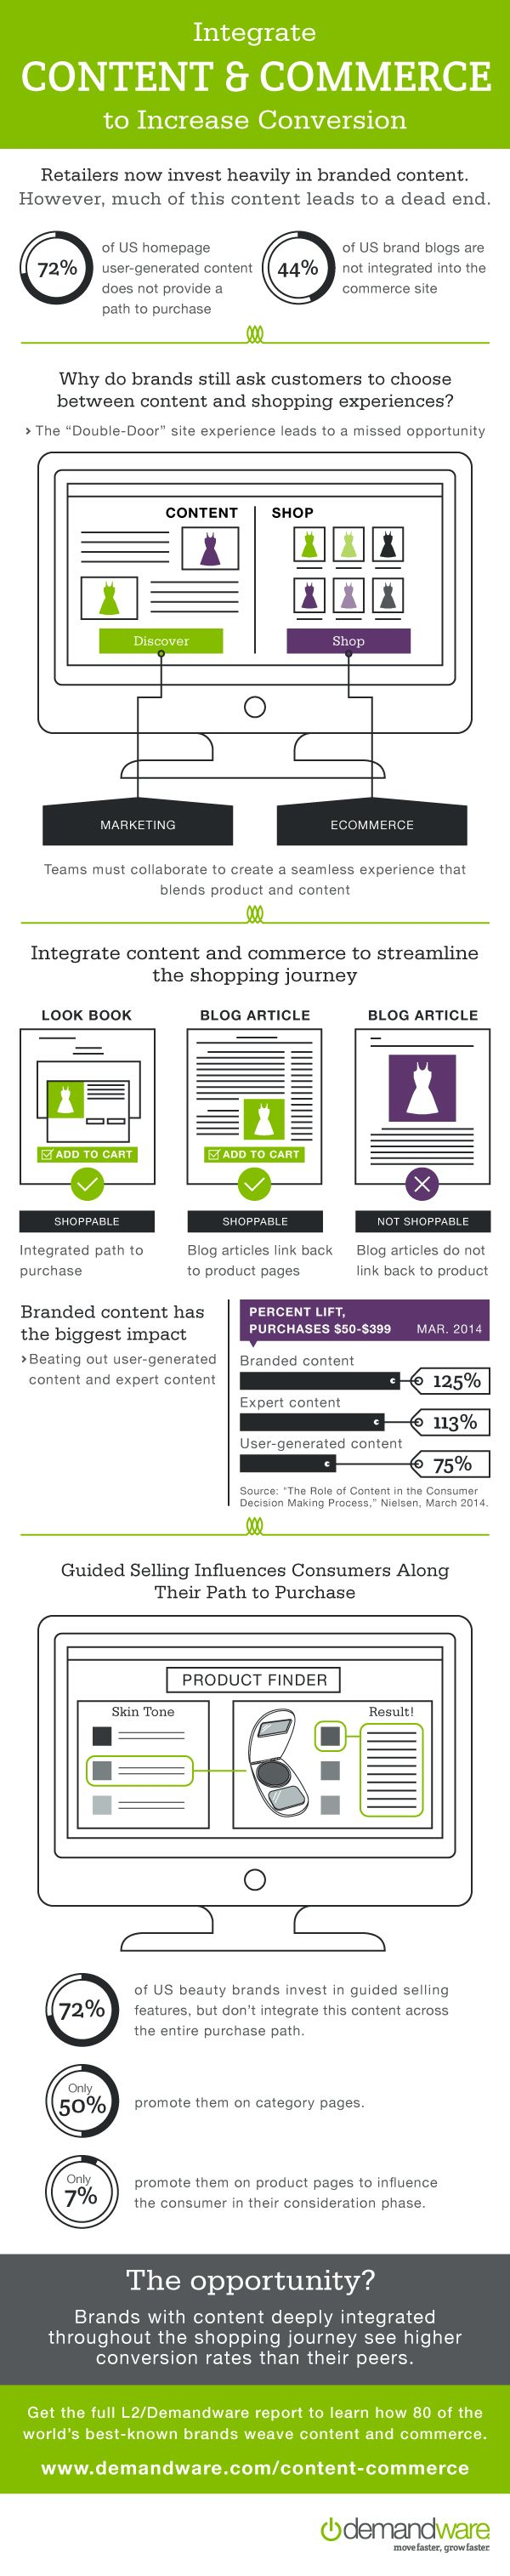 Integrate Content and Commerce to Increase Conversion #retail #content #commerce